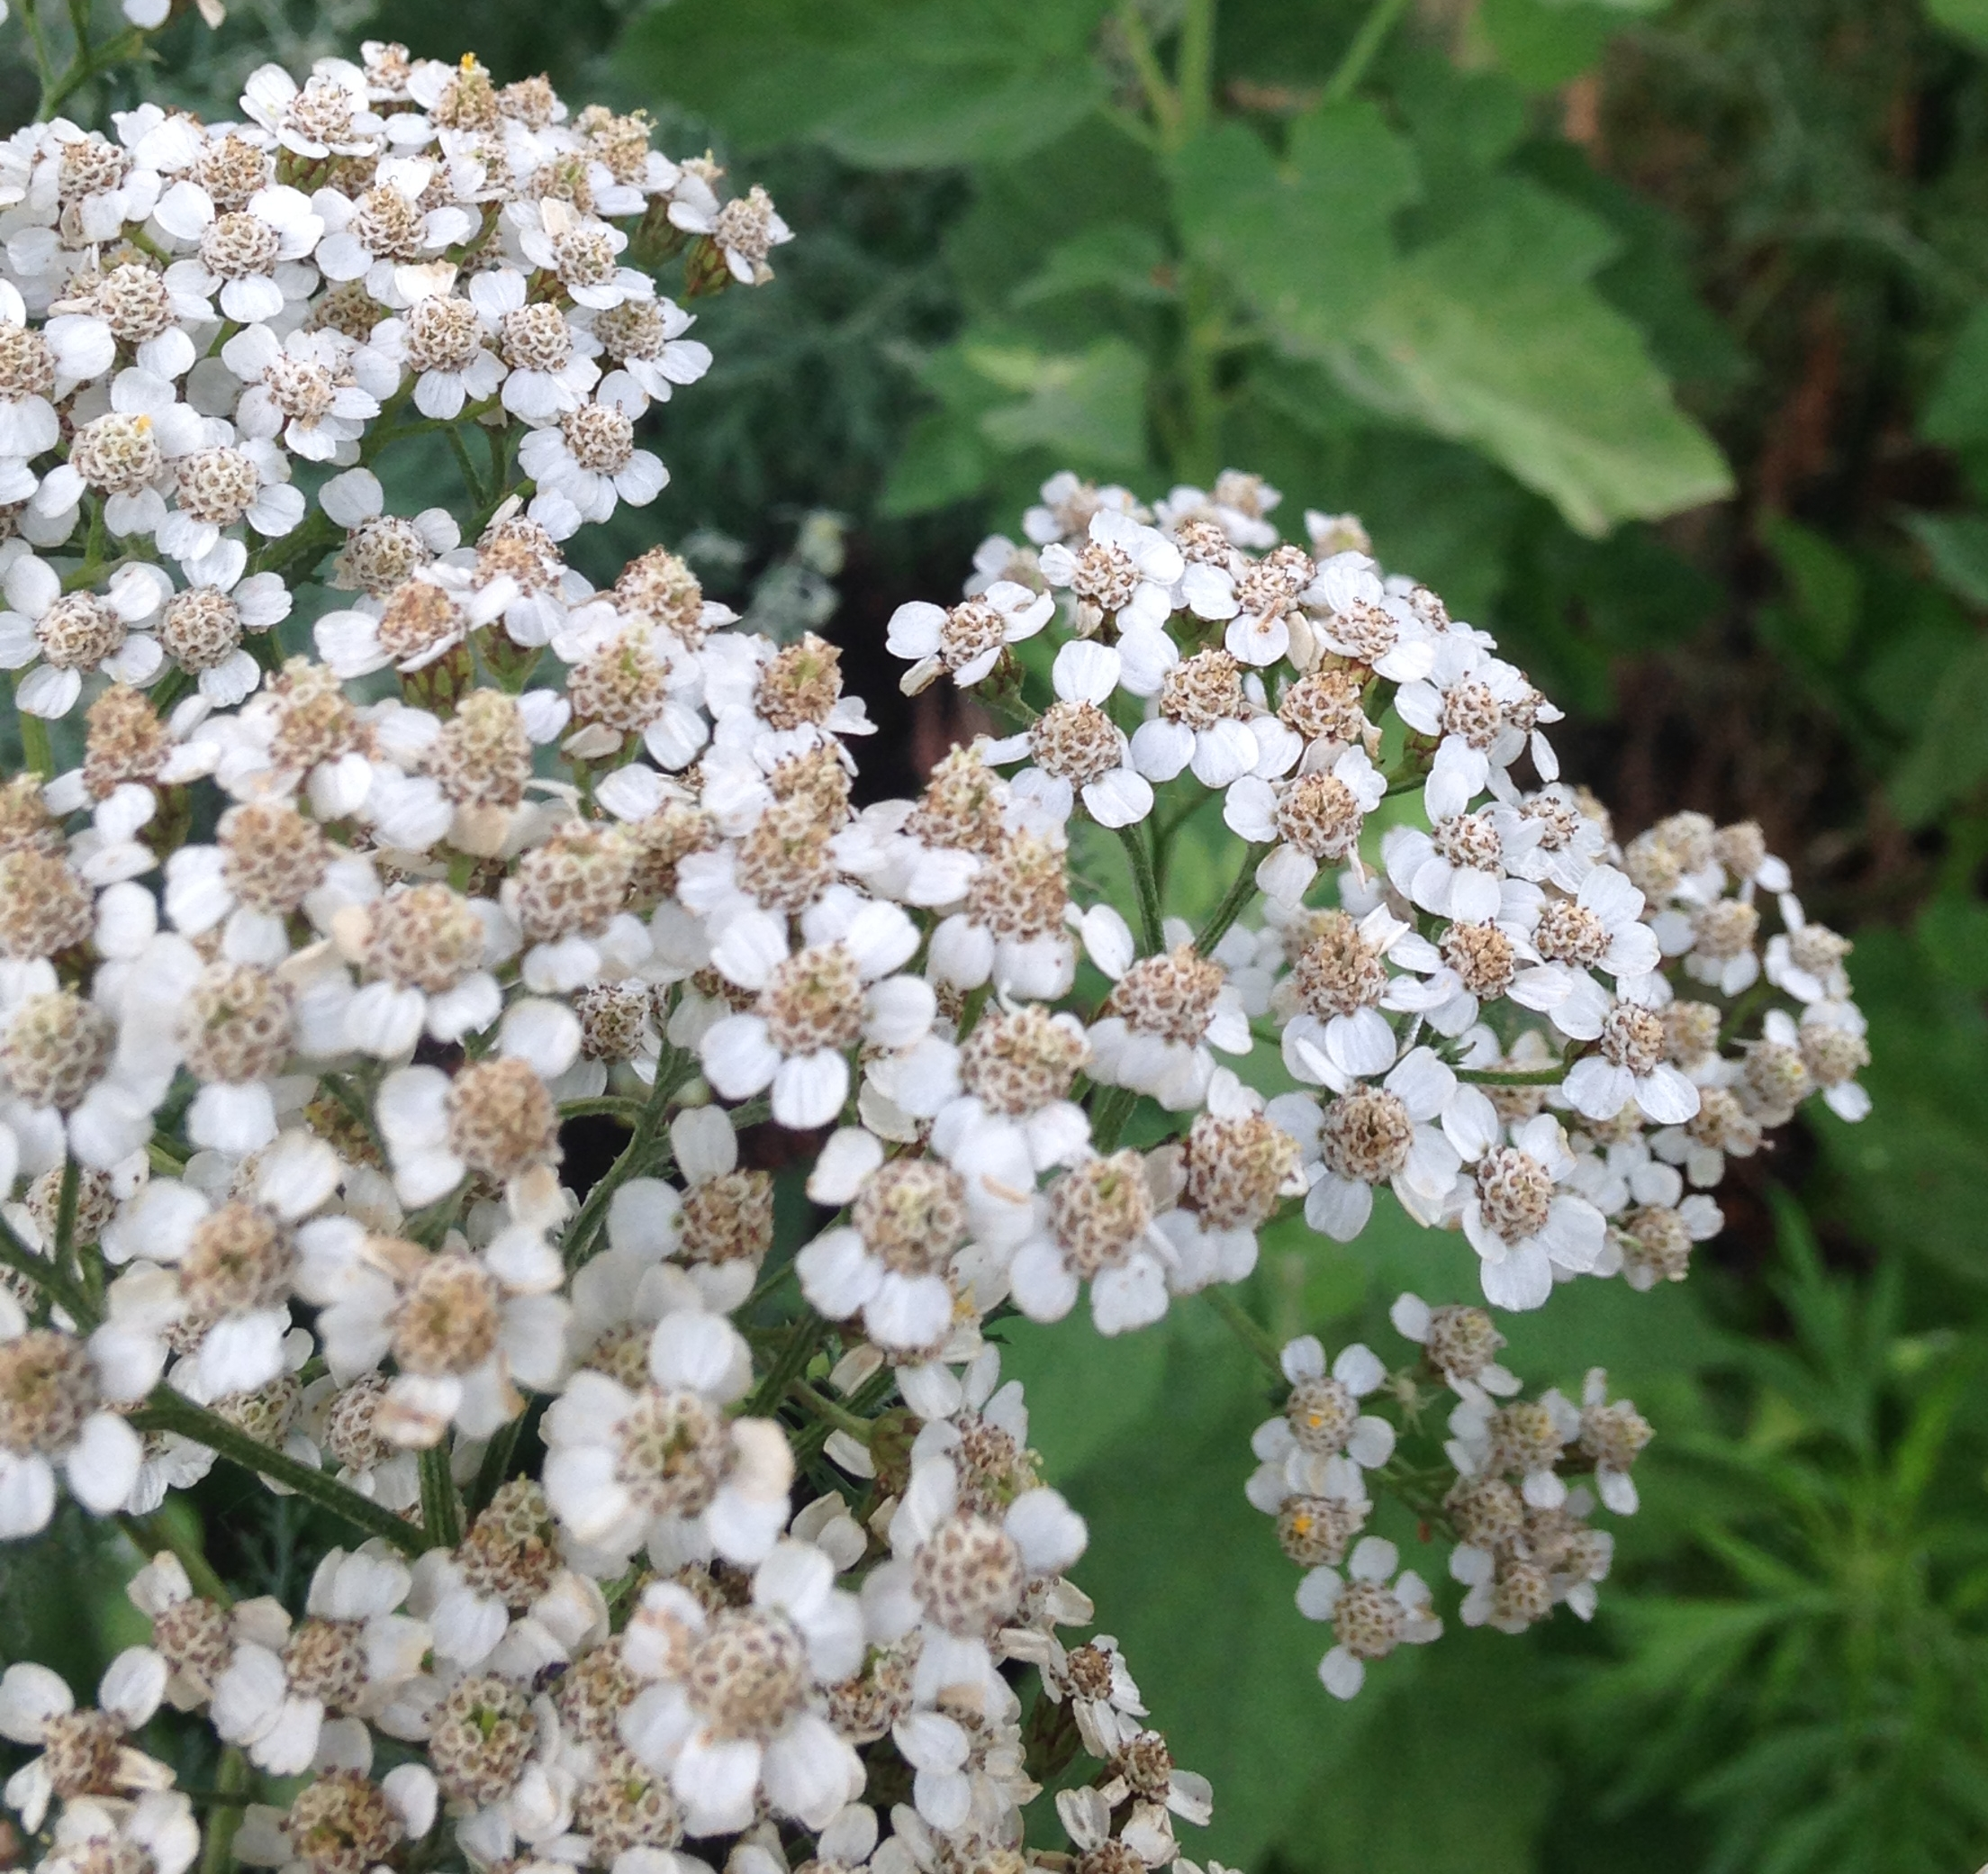 Yarrow flowers